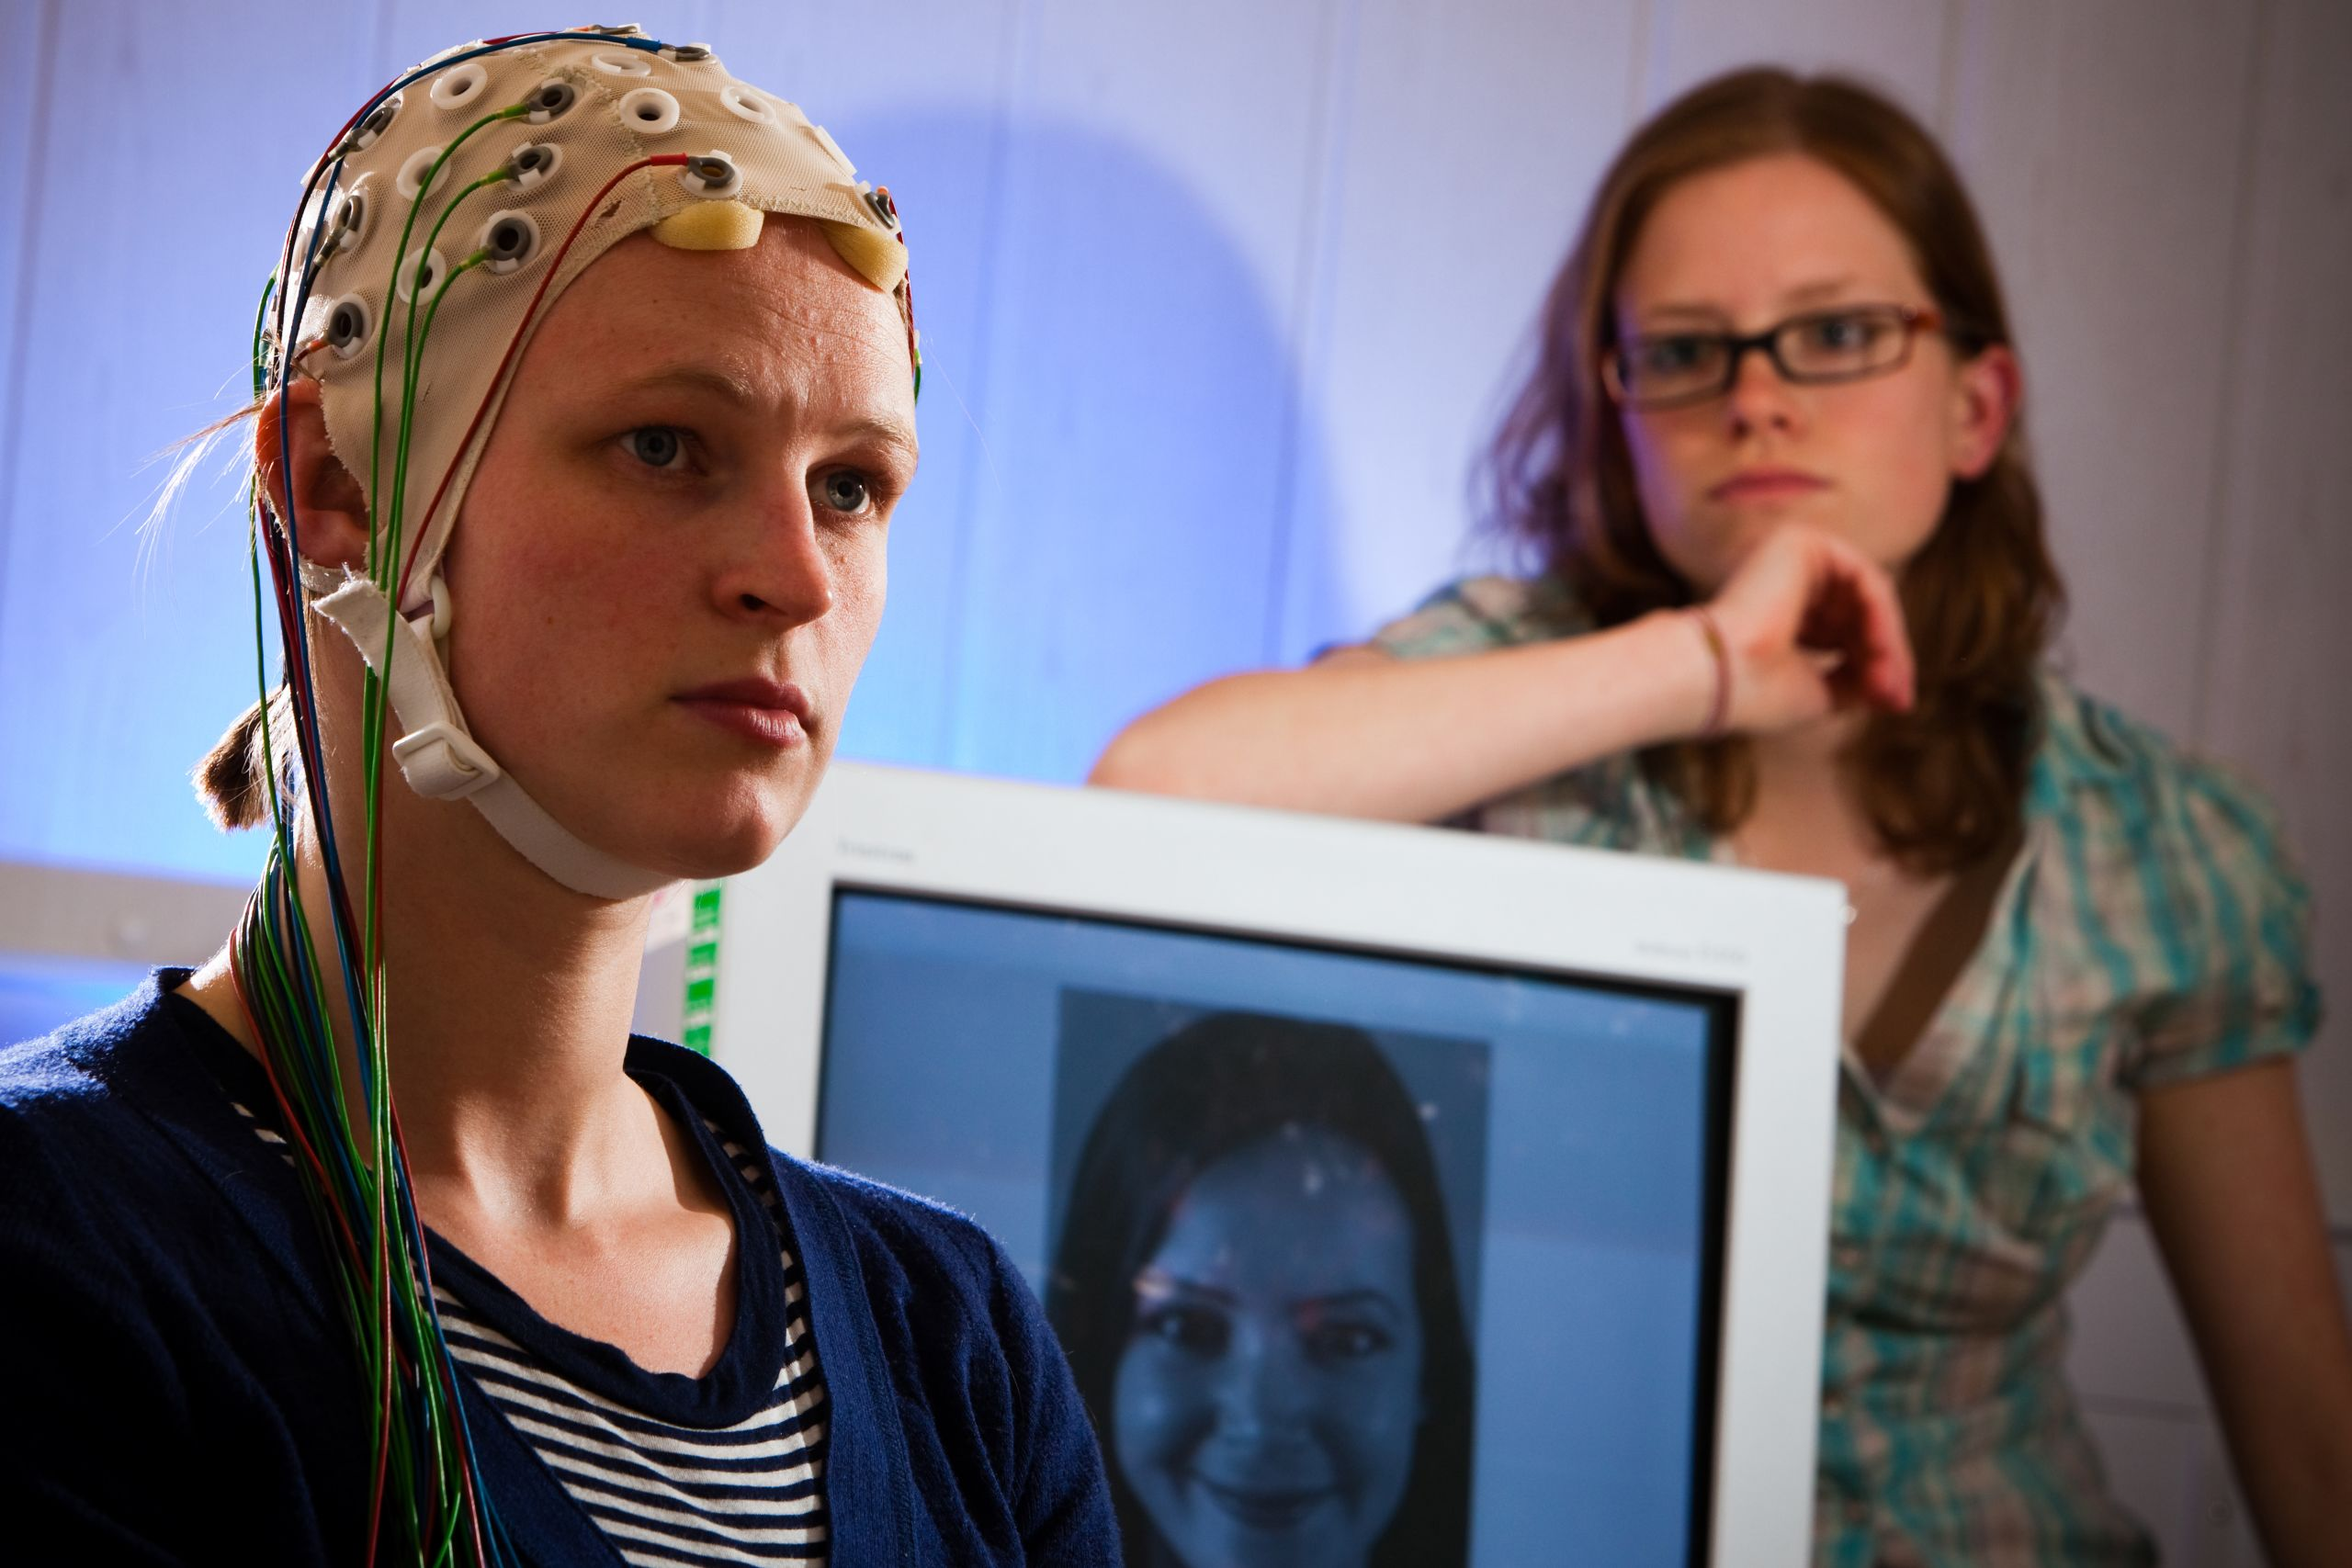 A female volunteer wears a headset with several wires attached as a scientist watches from behind a screen